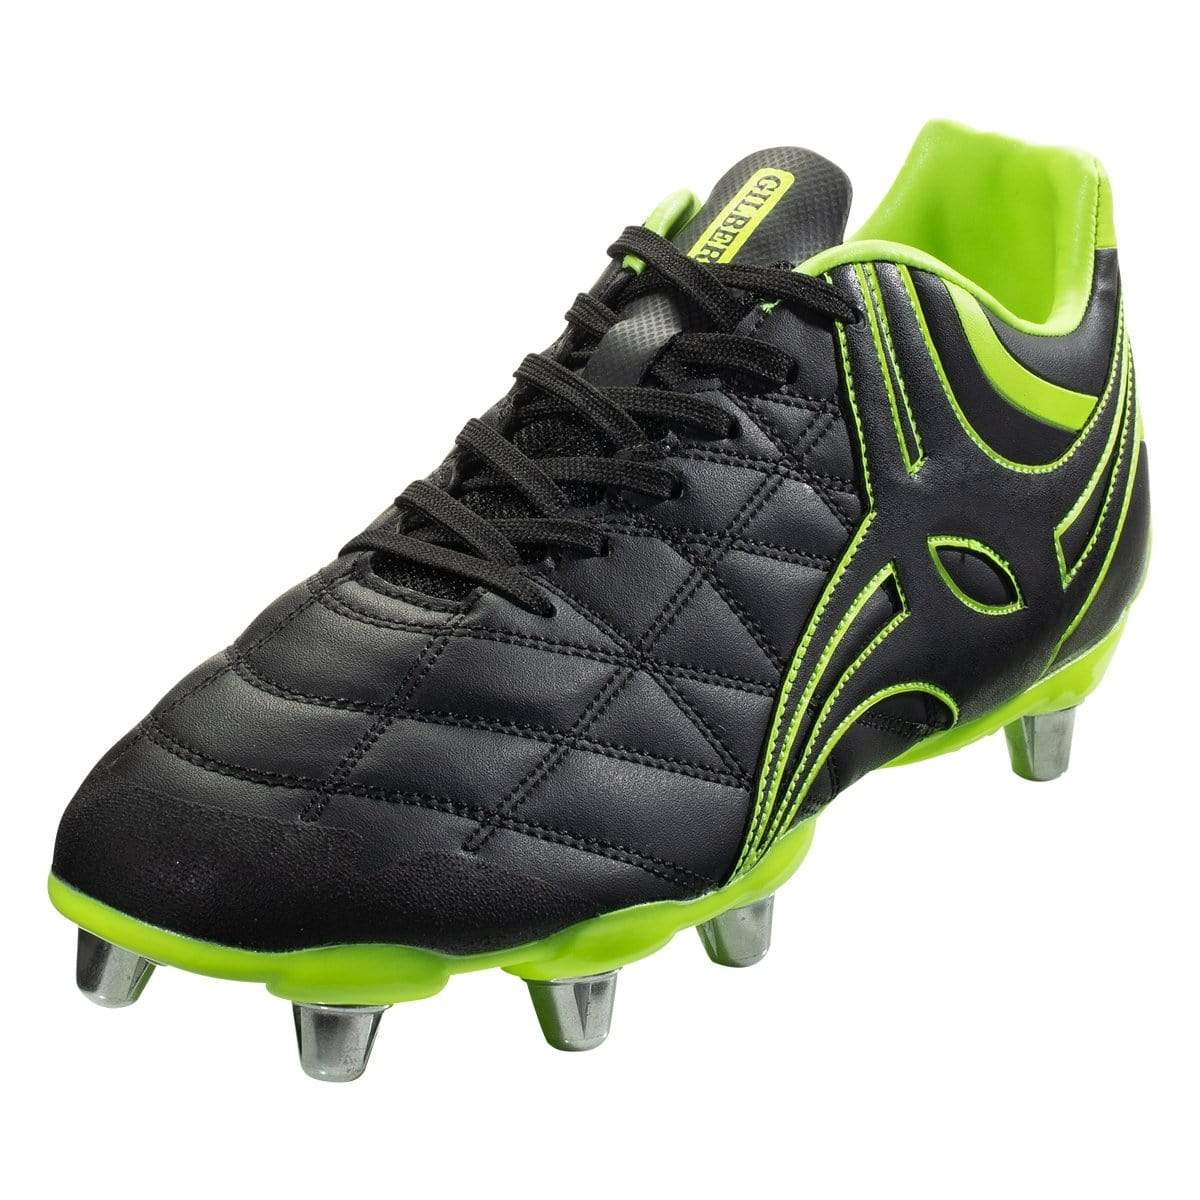 Gilbert Sidestep X9 8 Stud Soft Ground Rugby Boots Black